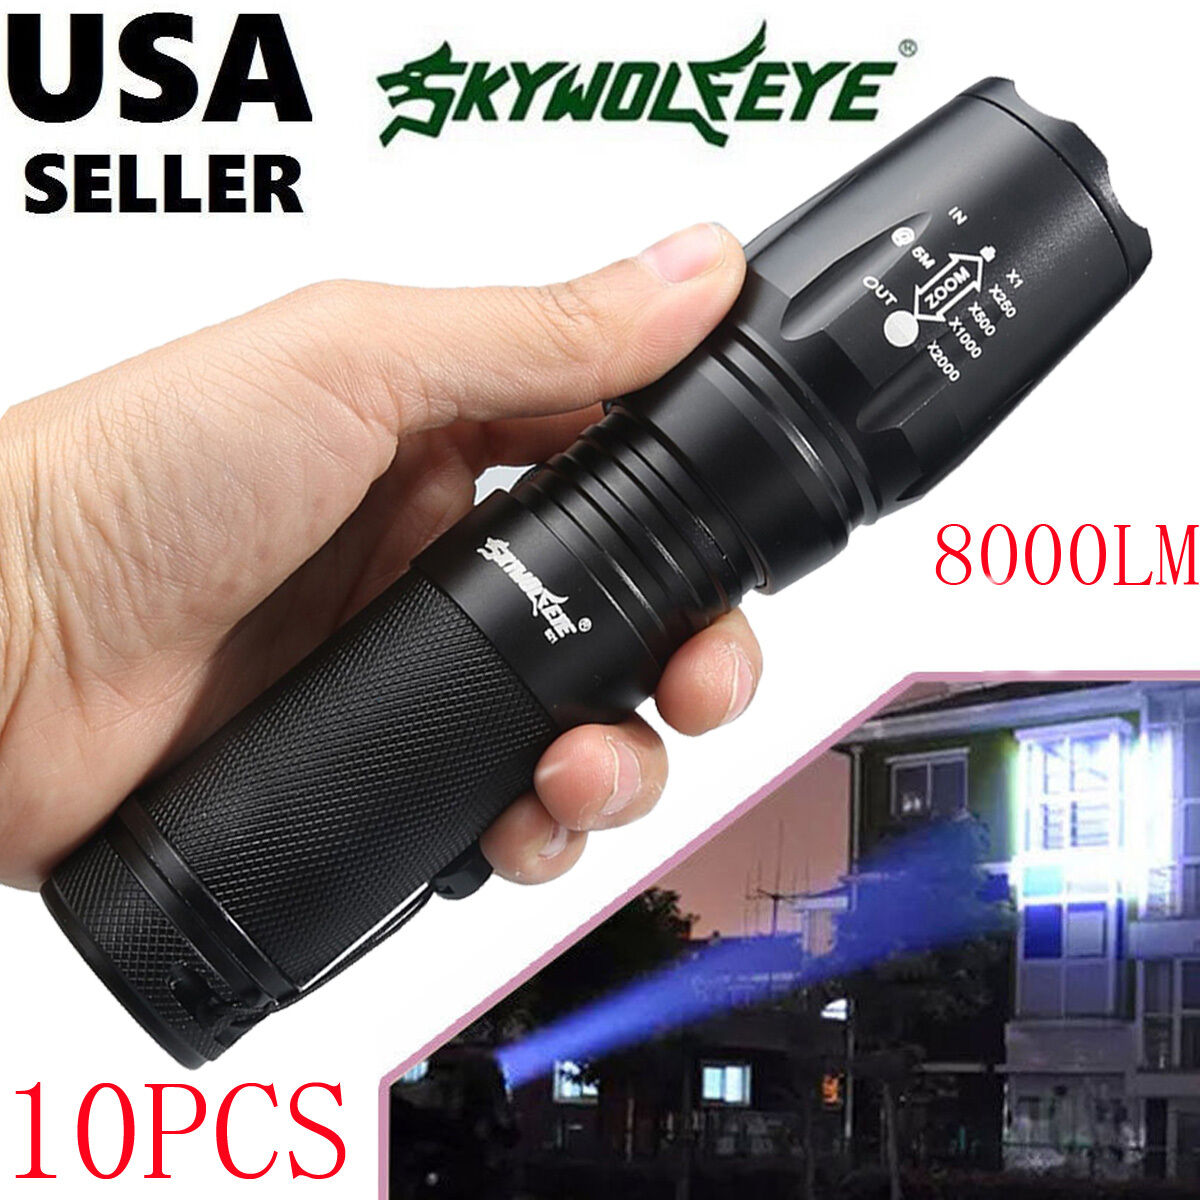 10PCS G700 8000 Lumens 5 Modes T6 Zoomable LED 18650 Flashlight Torch Lamp LOT